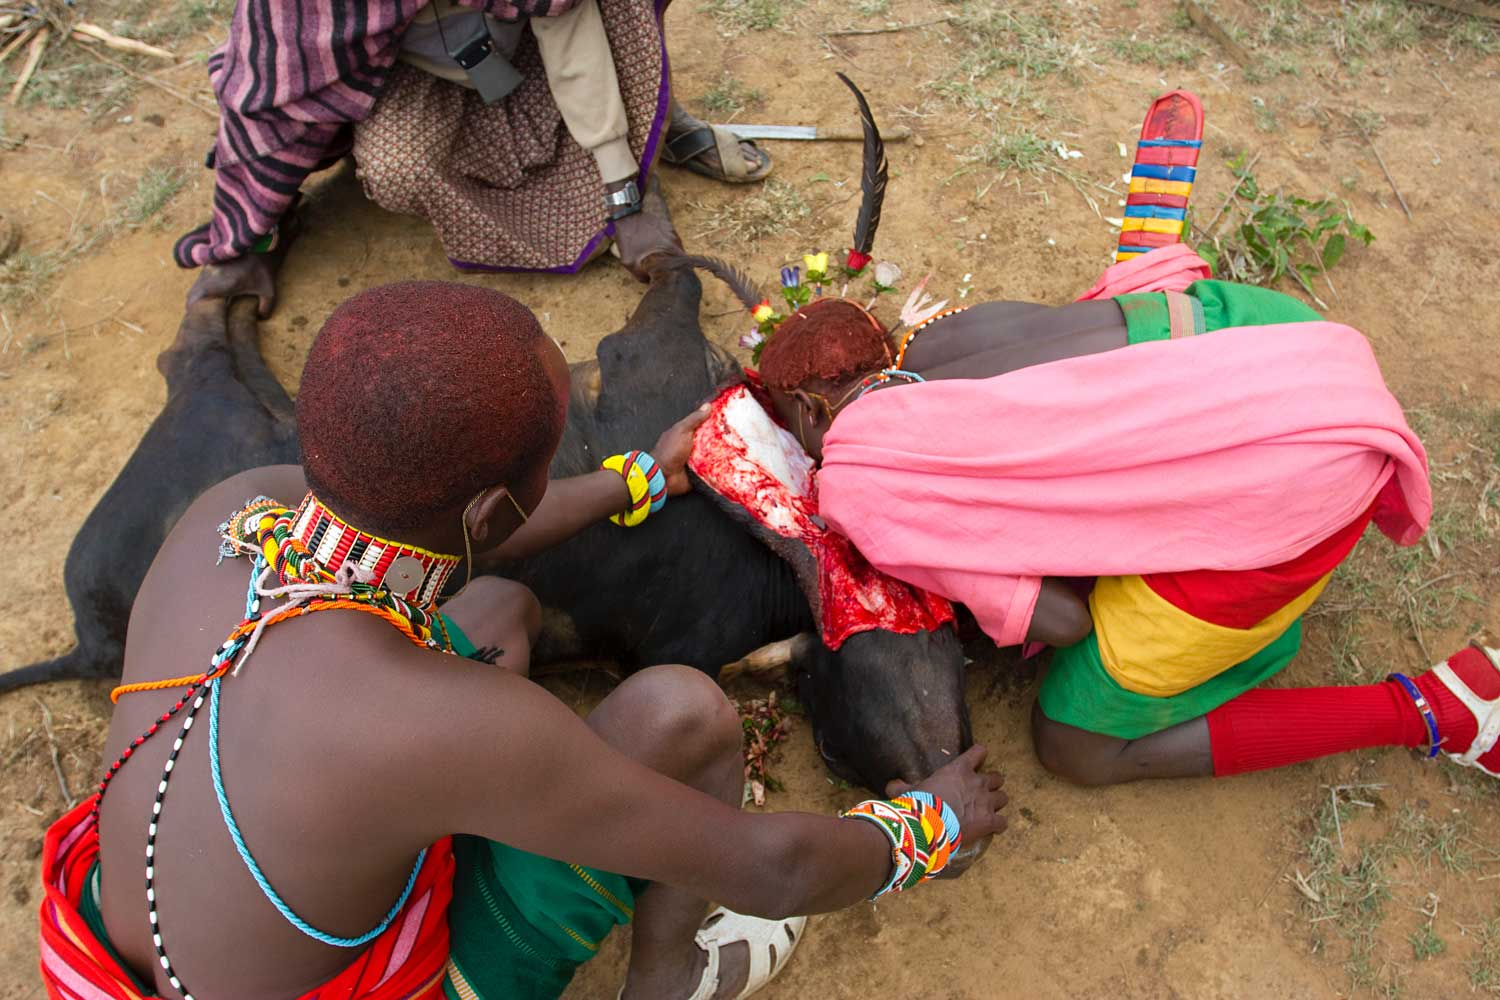 Marcy Mendelson, The Samburu Story | A moran drinks blood directly from the throat of a still-kicking cow during the Lmuget ceremony. Women are not permitted to be present during this portion of the graduation.